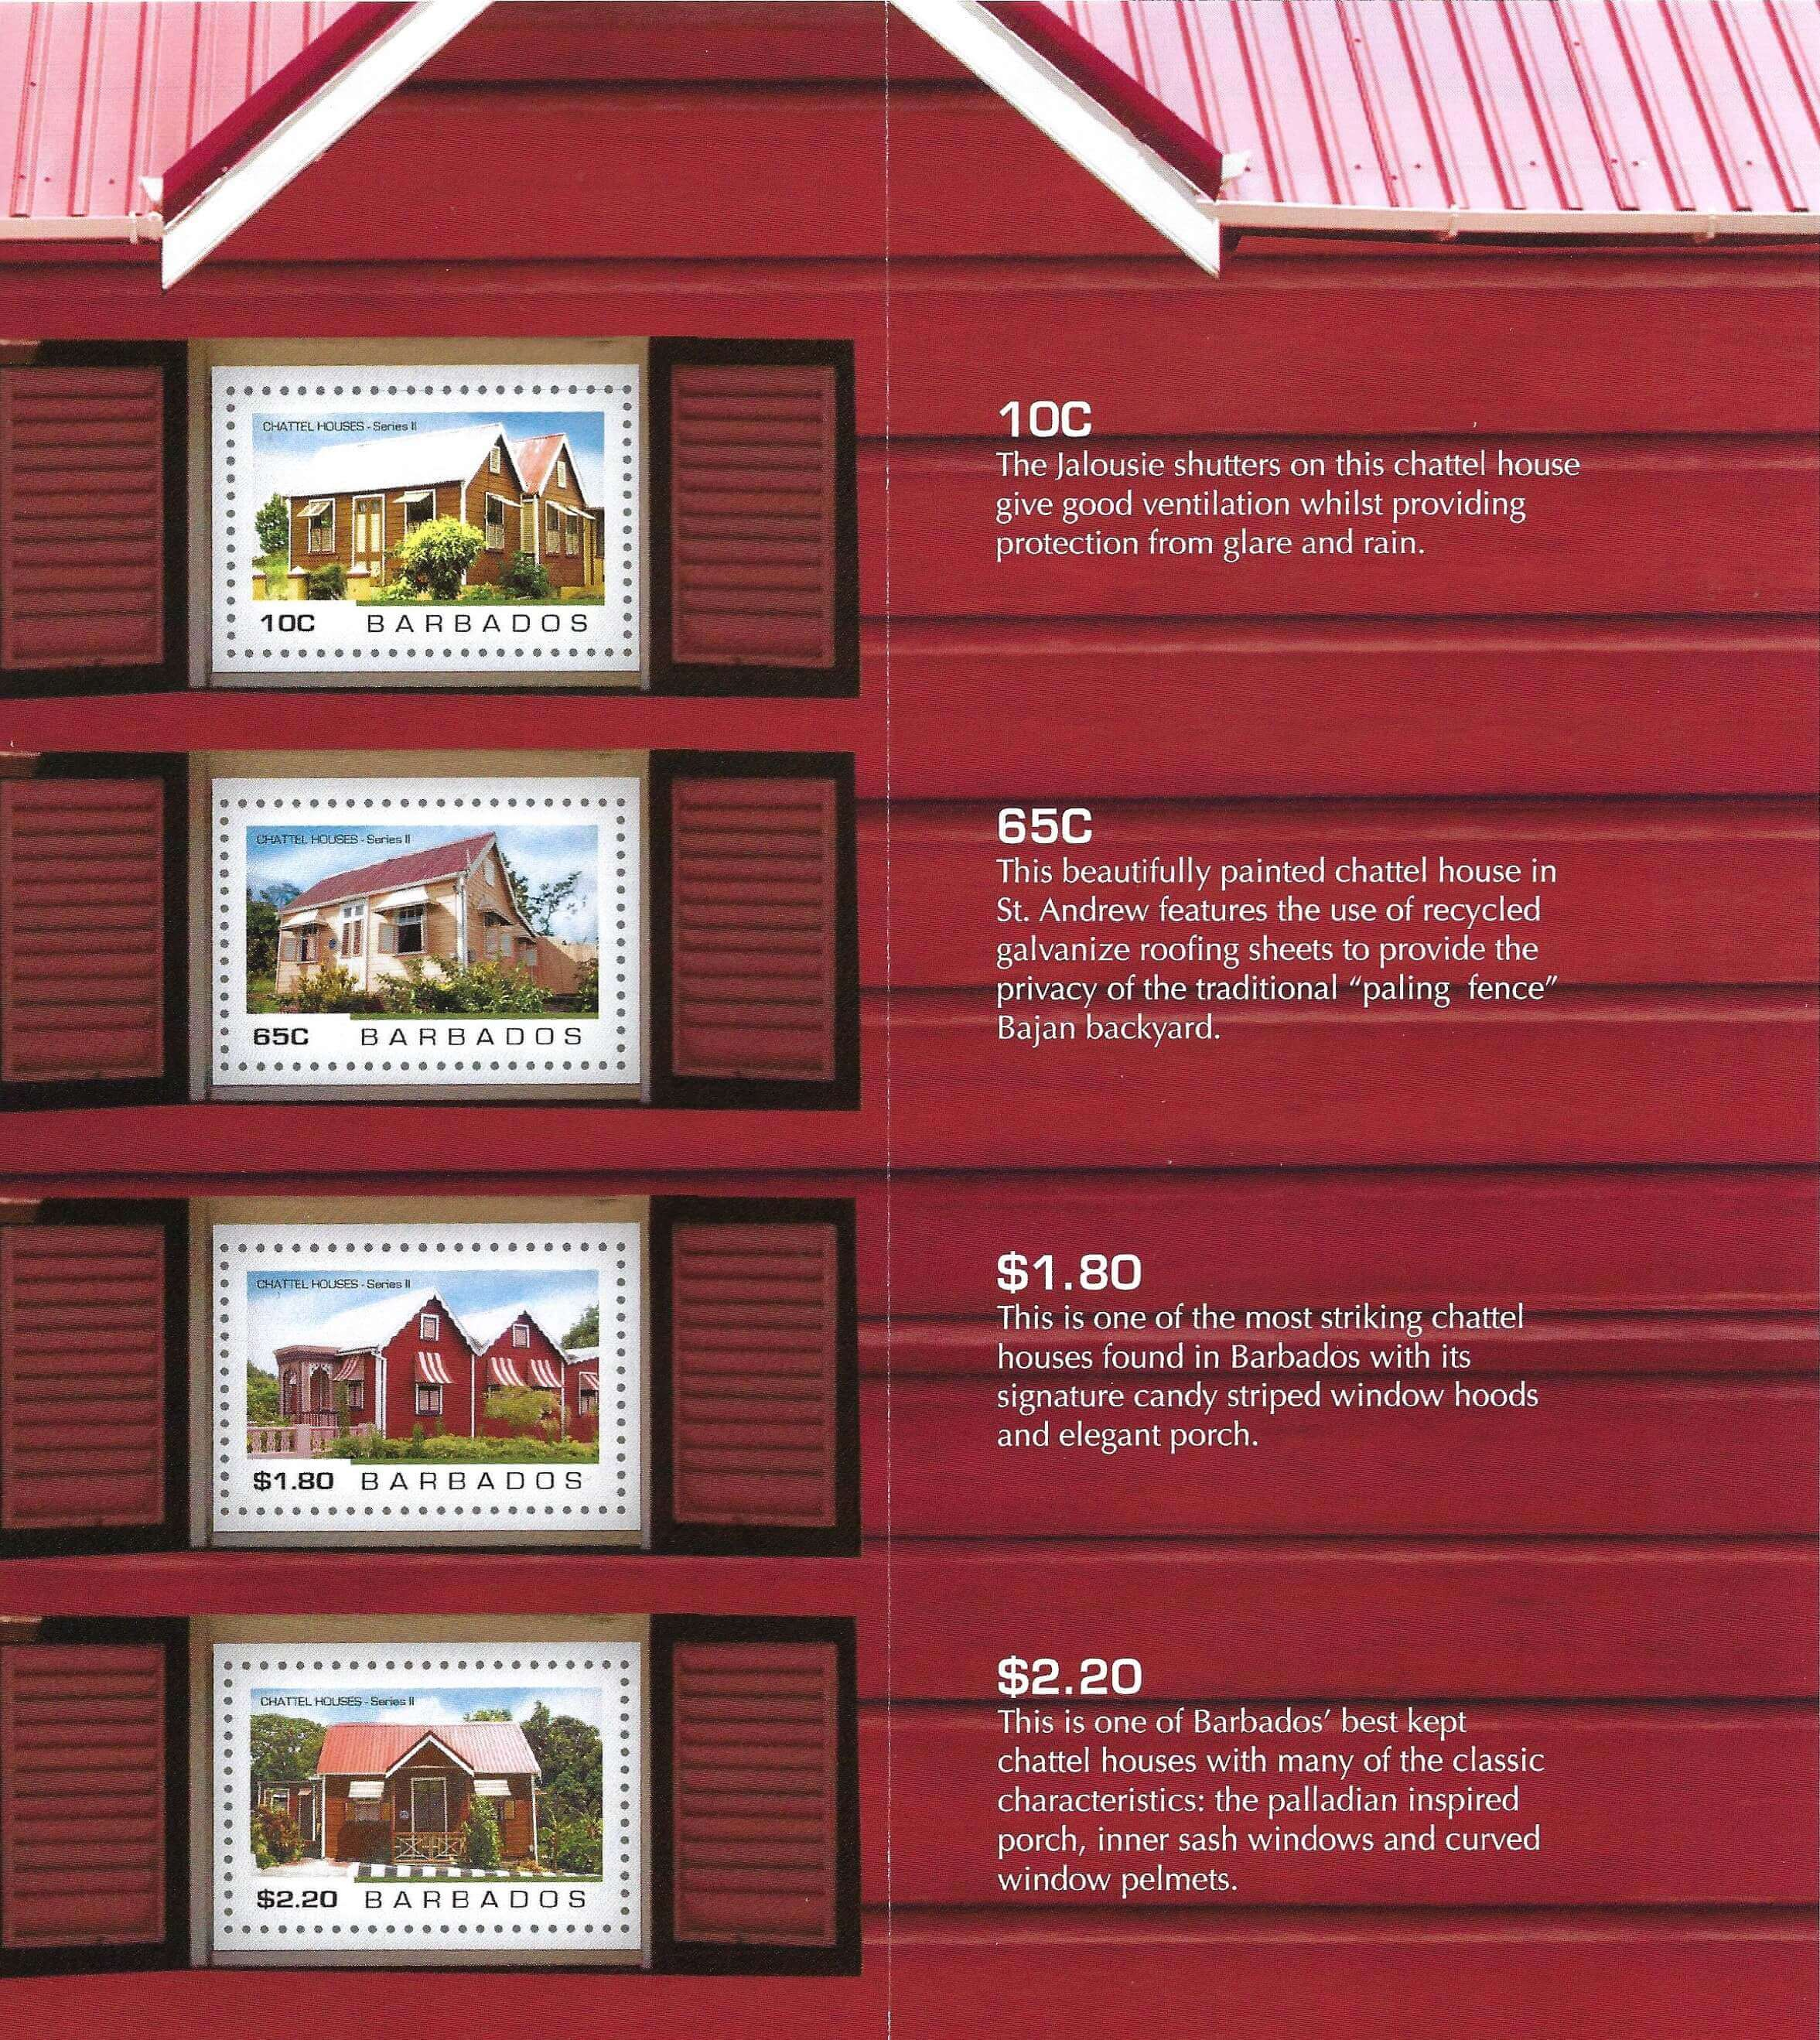 New Barbados stamp issue showcases more Chattel Houses